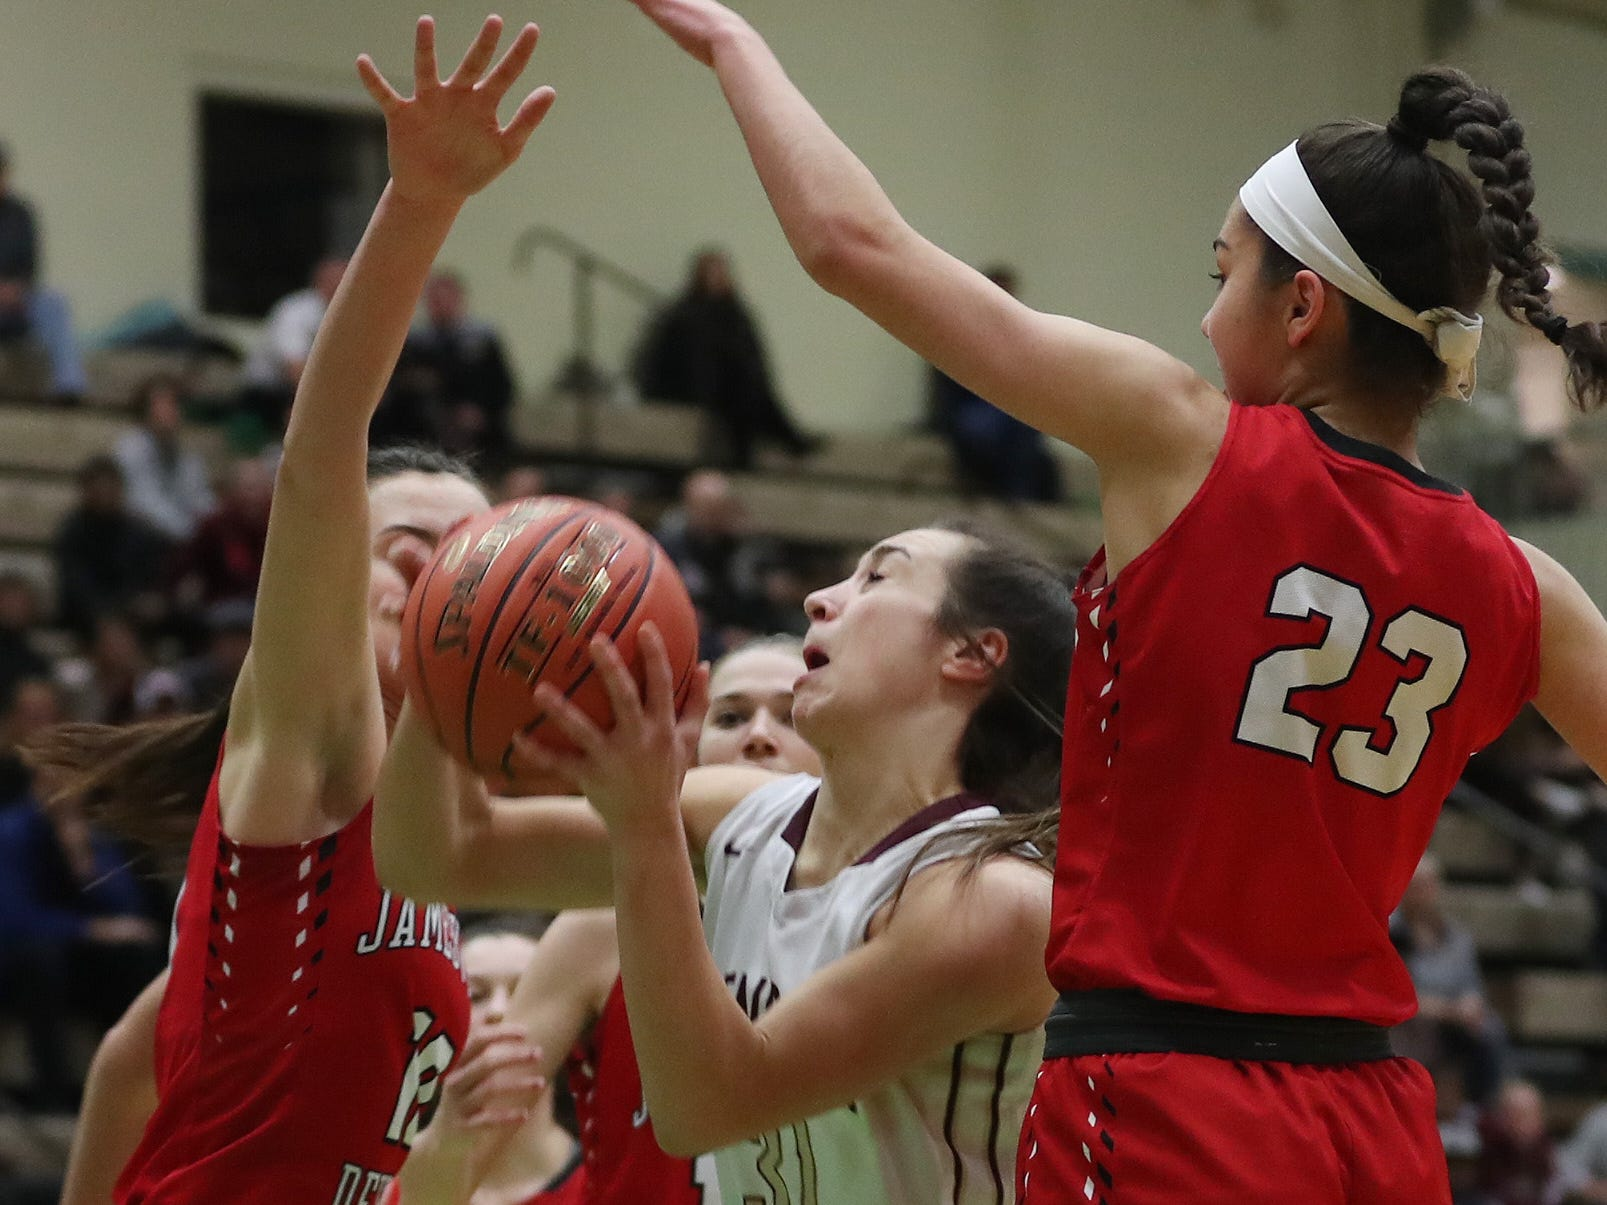 Pittsford Mendon's Katie Bischoping (31) tries to drive to the basket against Jamesville-DeWitt's Sydney Baker (2) during the girls Class A state semifinal at Hudson Valley Community College in Troy March 16, 2019.